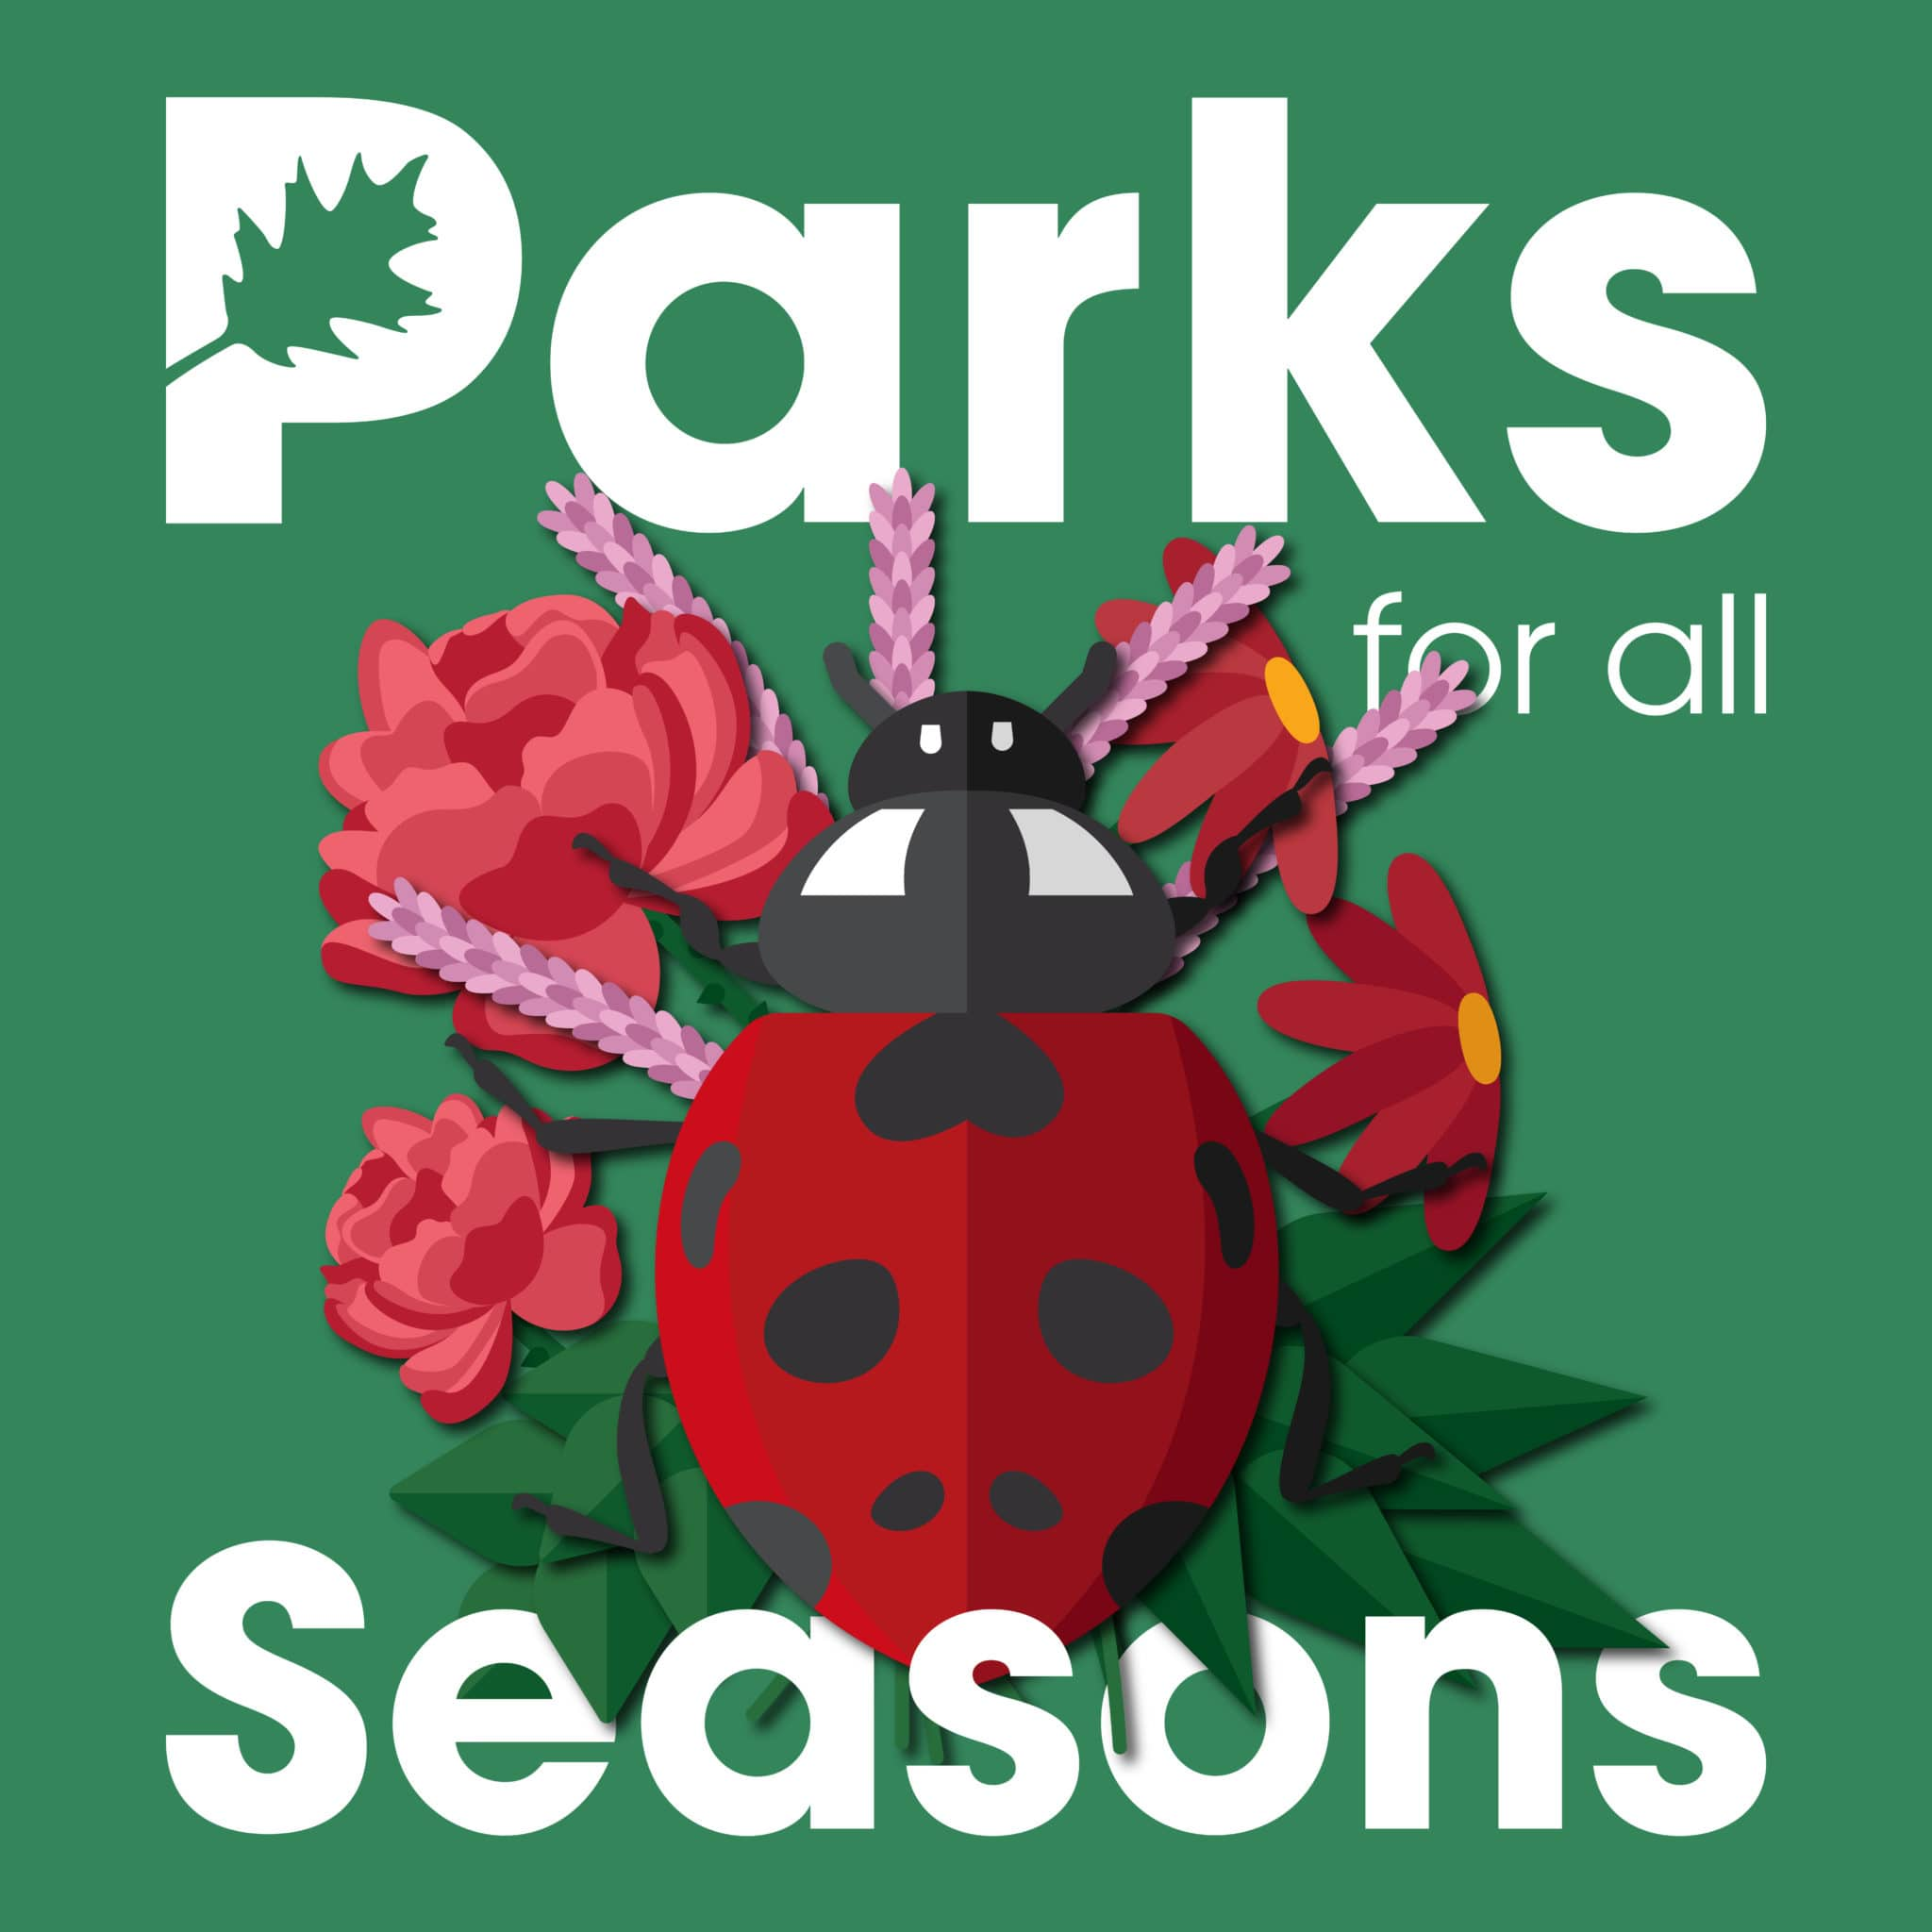 Lady Bug Parks for All Seasons